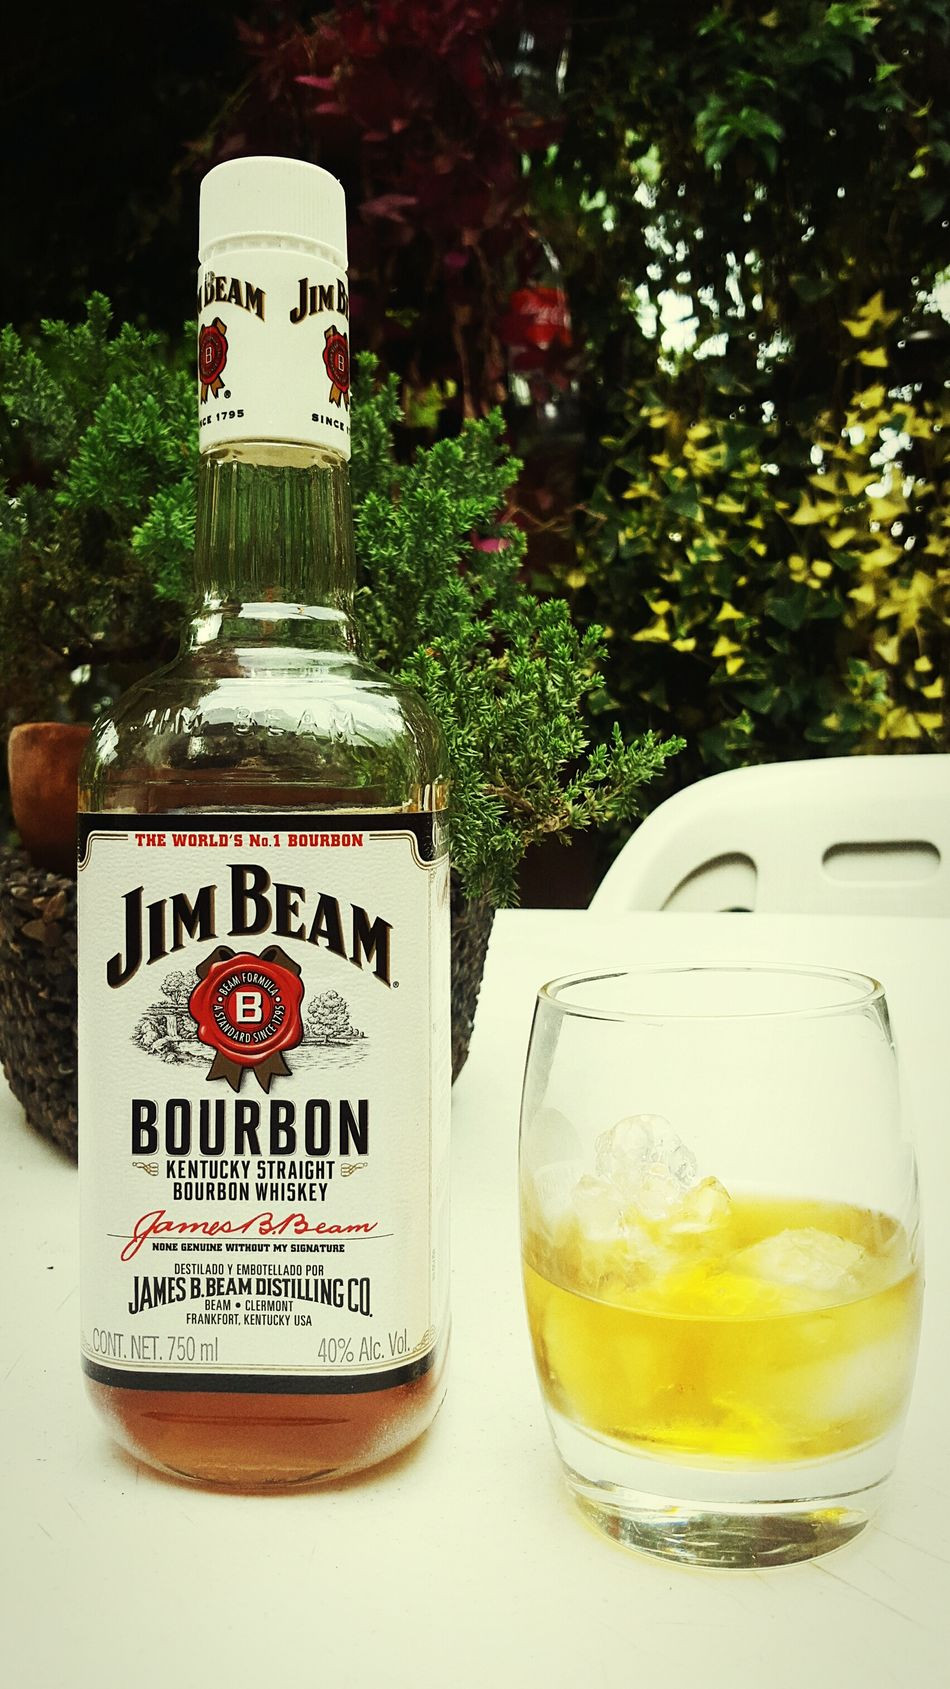 Jim Beam Bourbon Whisky Whiskey Photo By Agustín Orozco Díaz - 2015